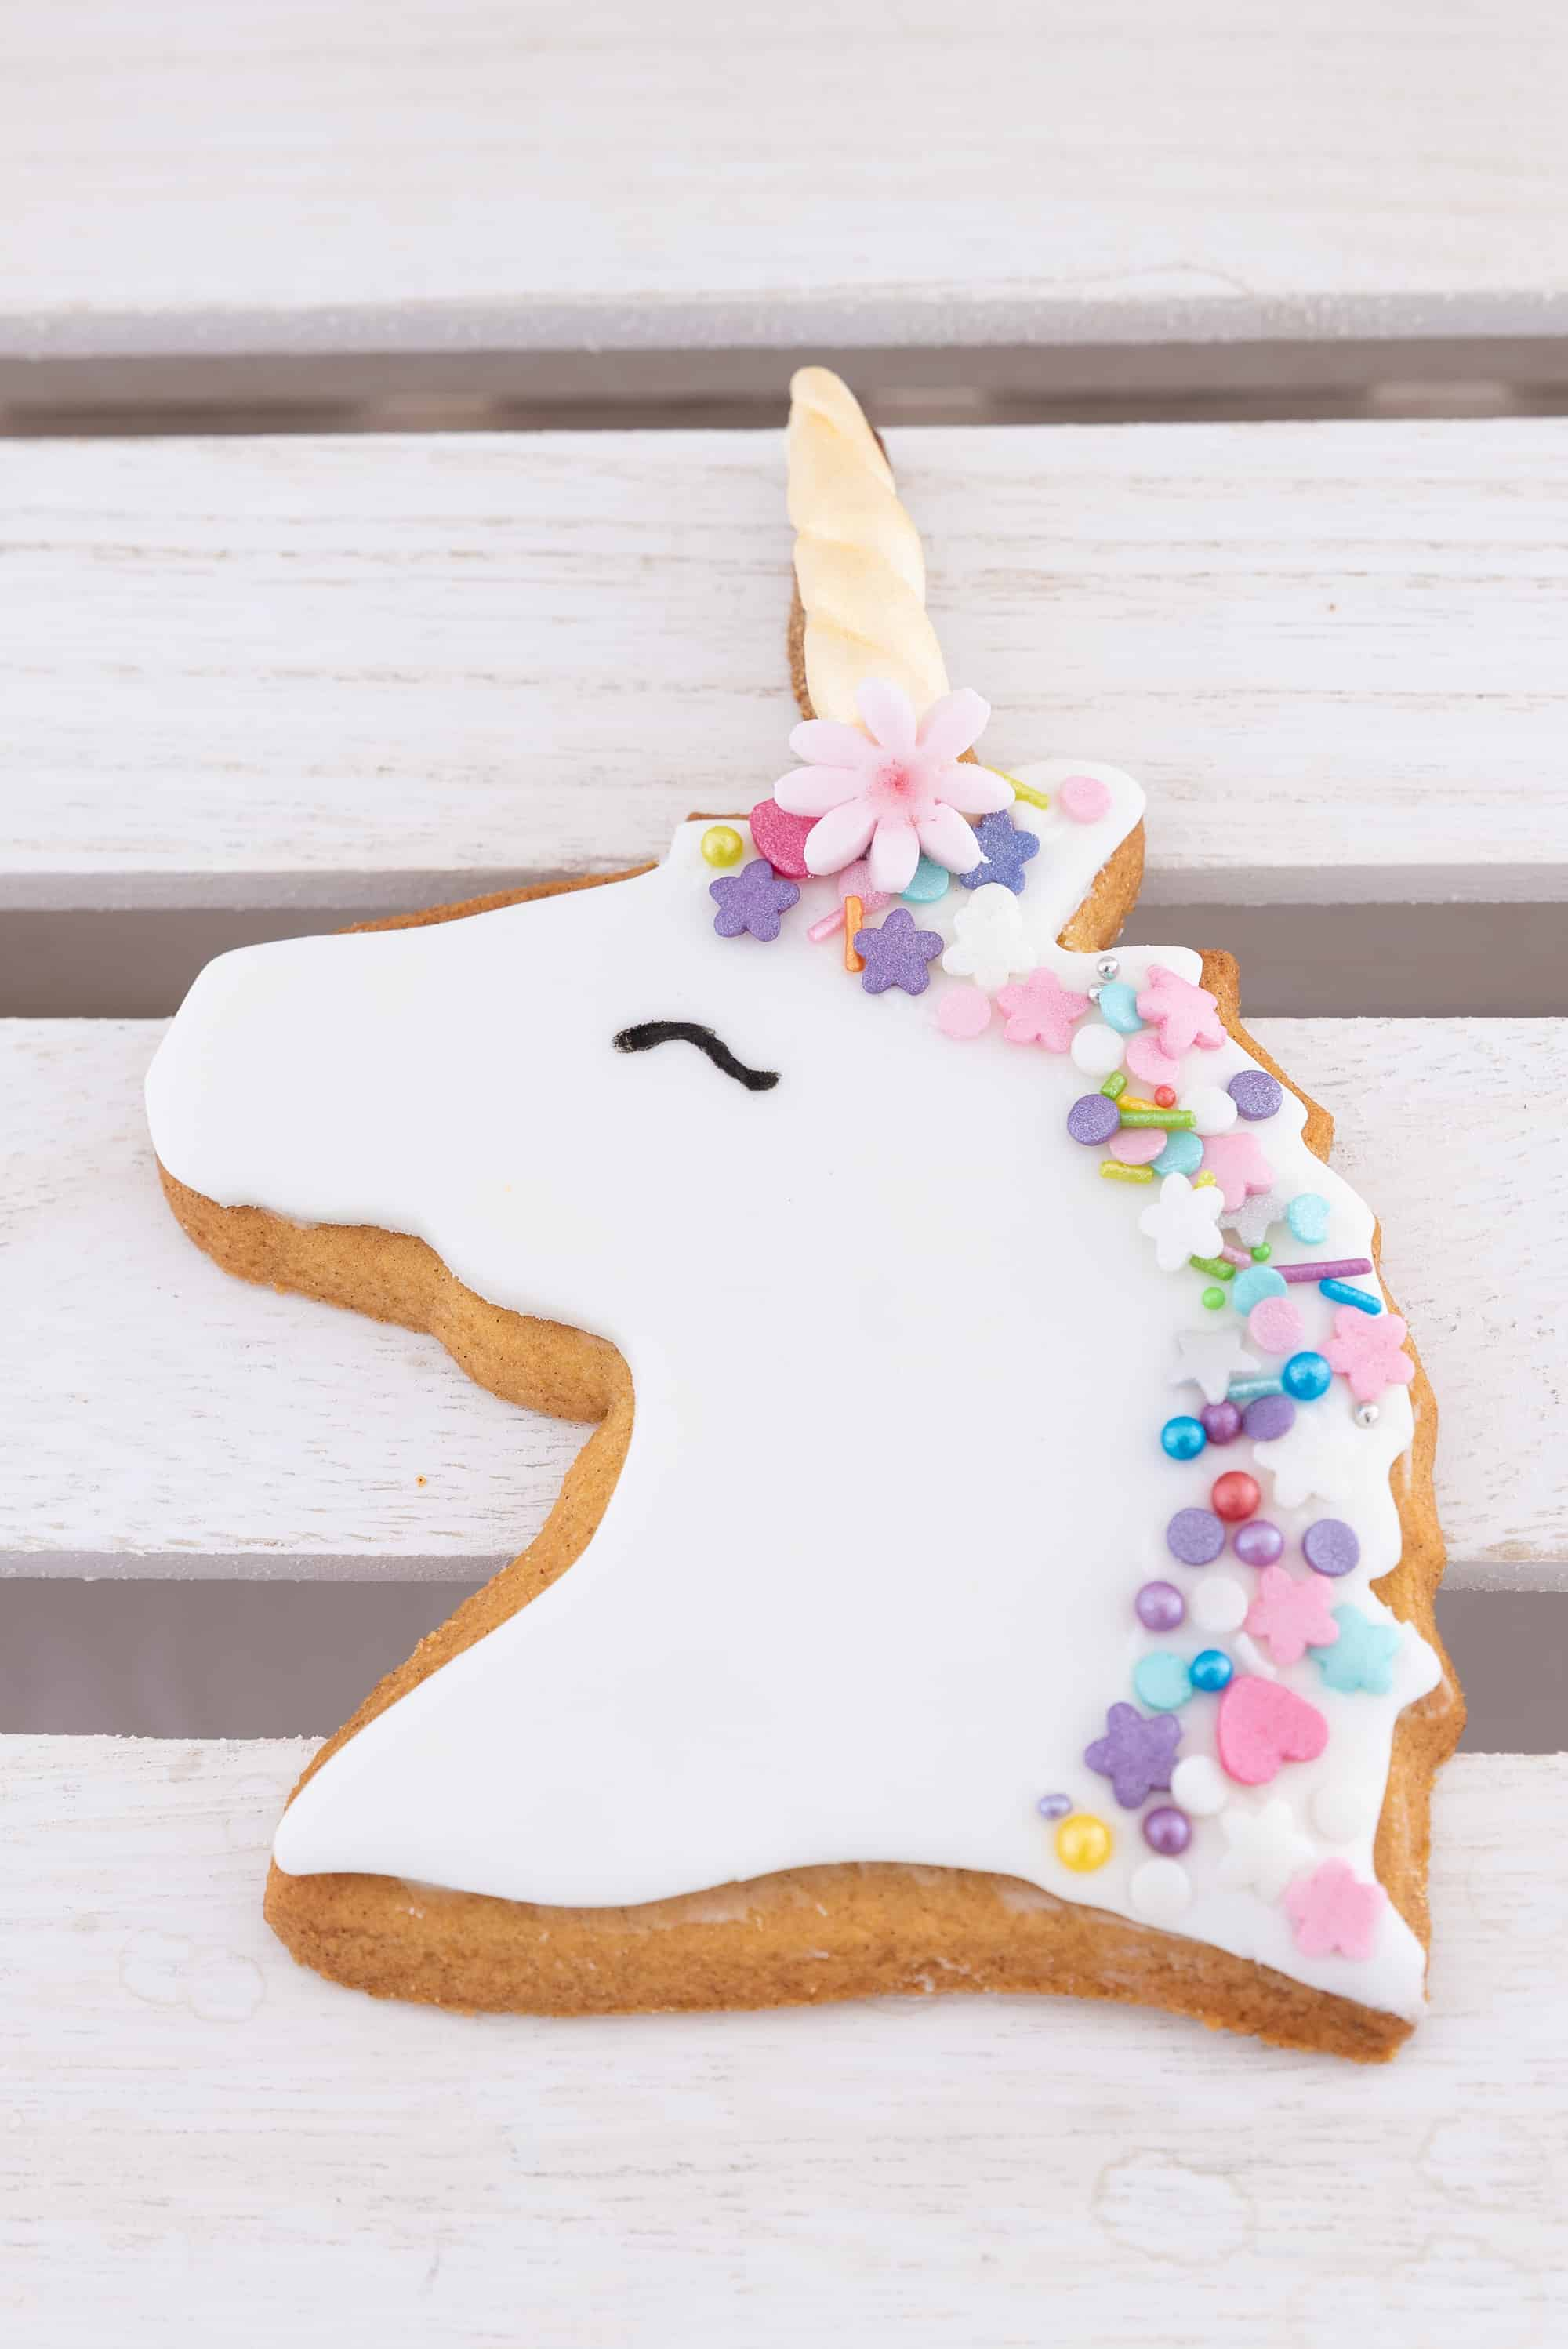 www.blossombakery.co.uk products i have photographed - gingerbread unicorn